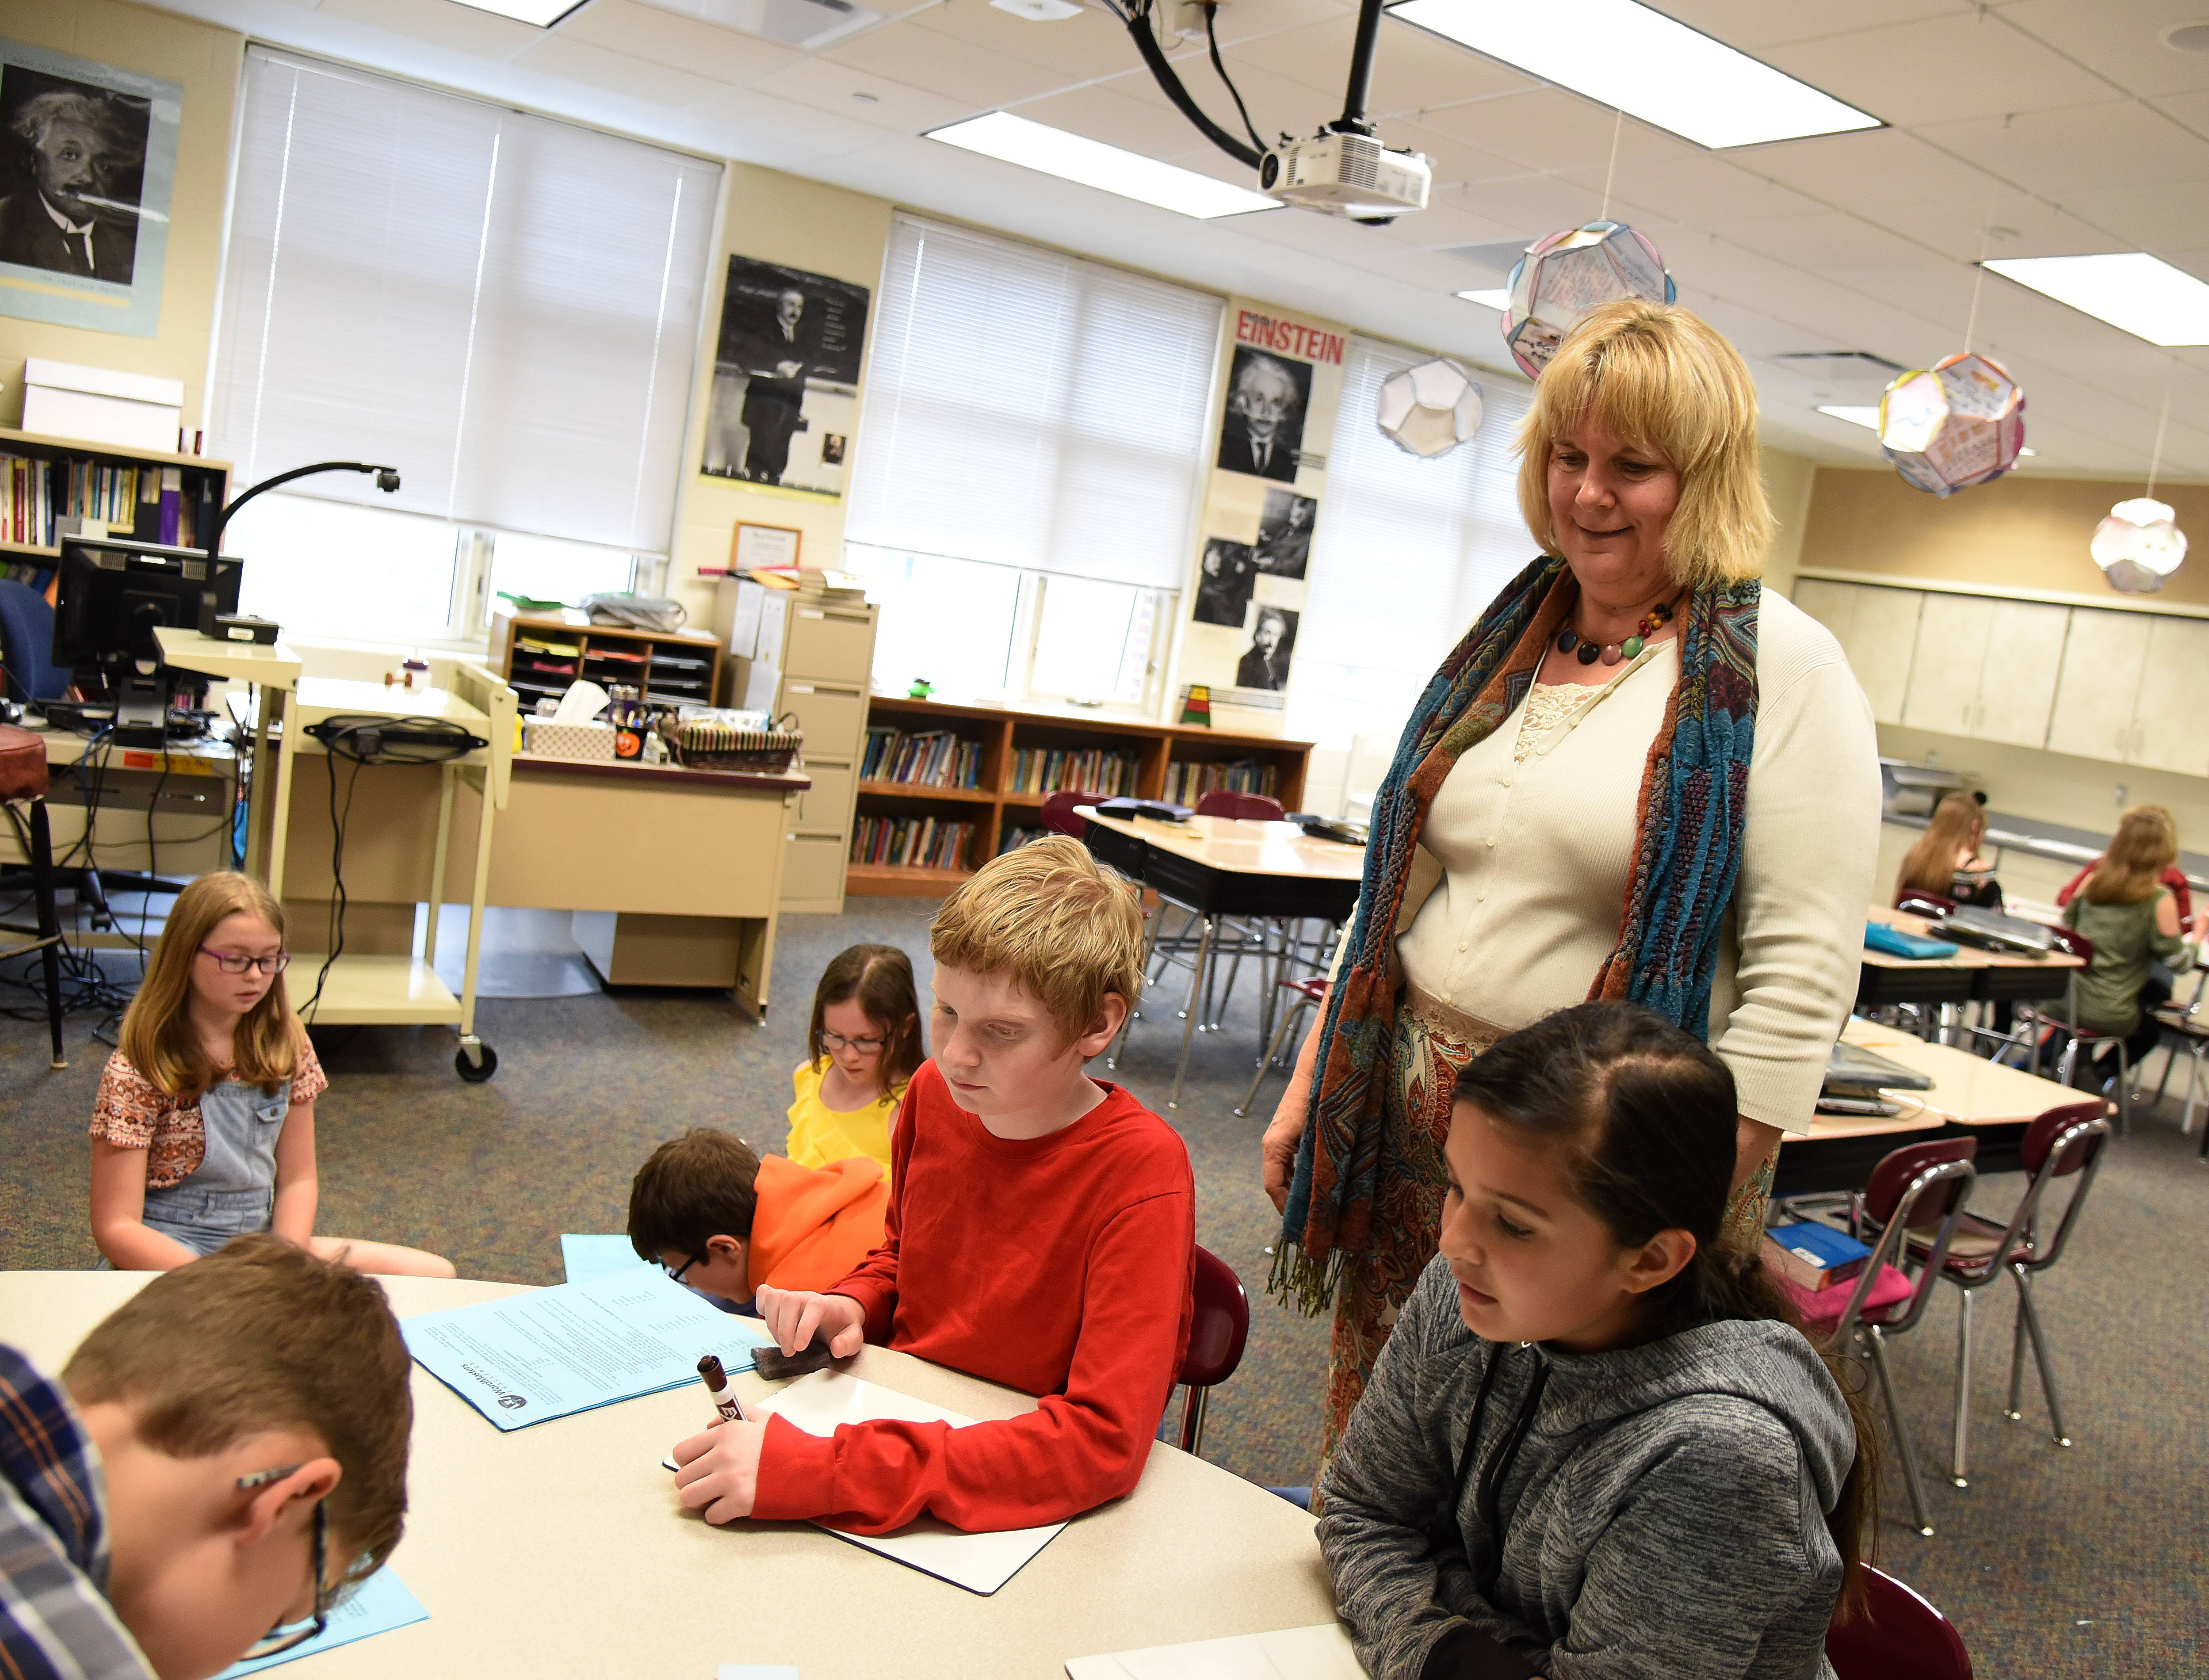 Nancy Krasinski checks on the progress of her fifth-graders, who are playing Pictionary as part of an accelerated/enrichment classroom at Williamsburg Elementary School in Geneva.